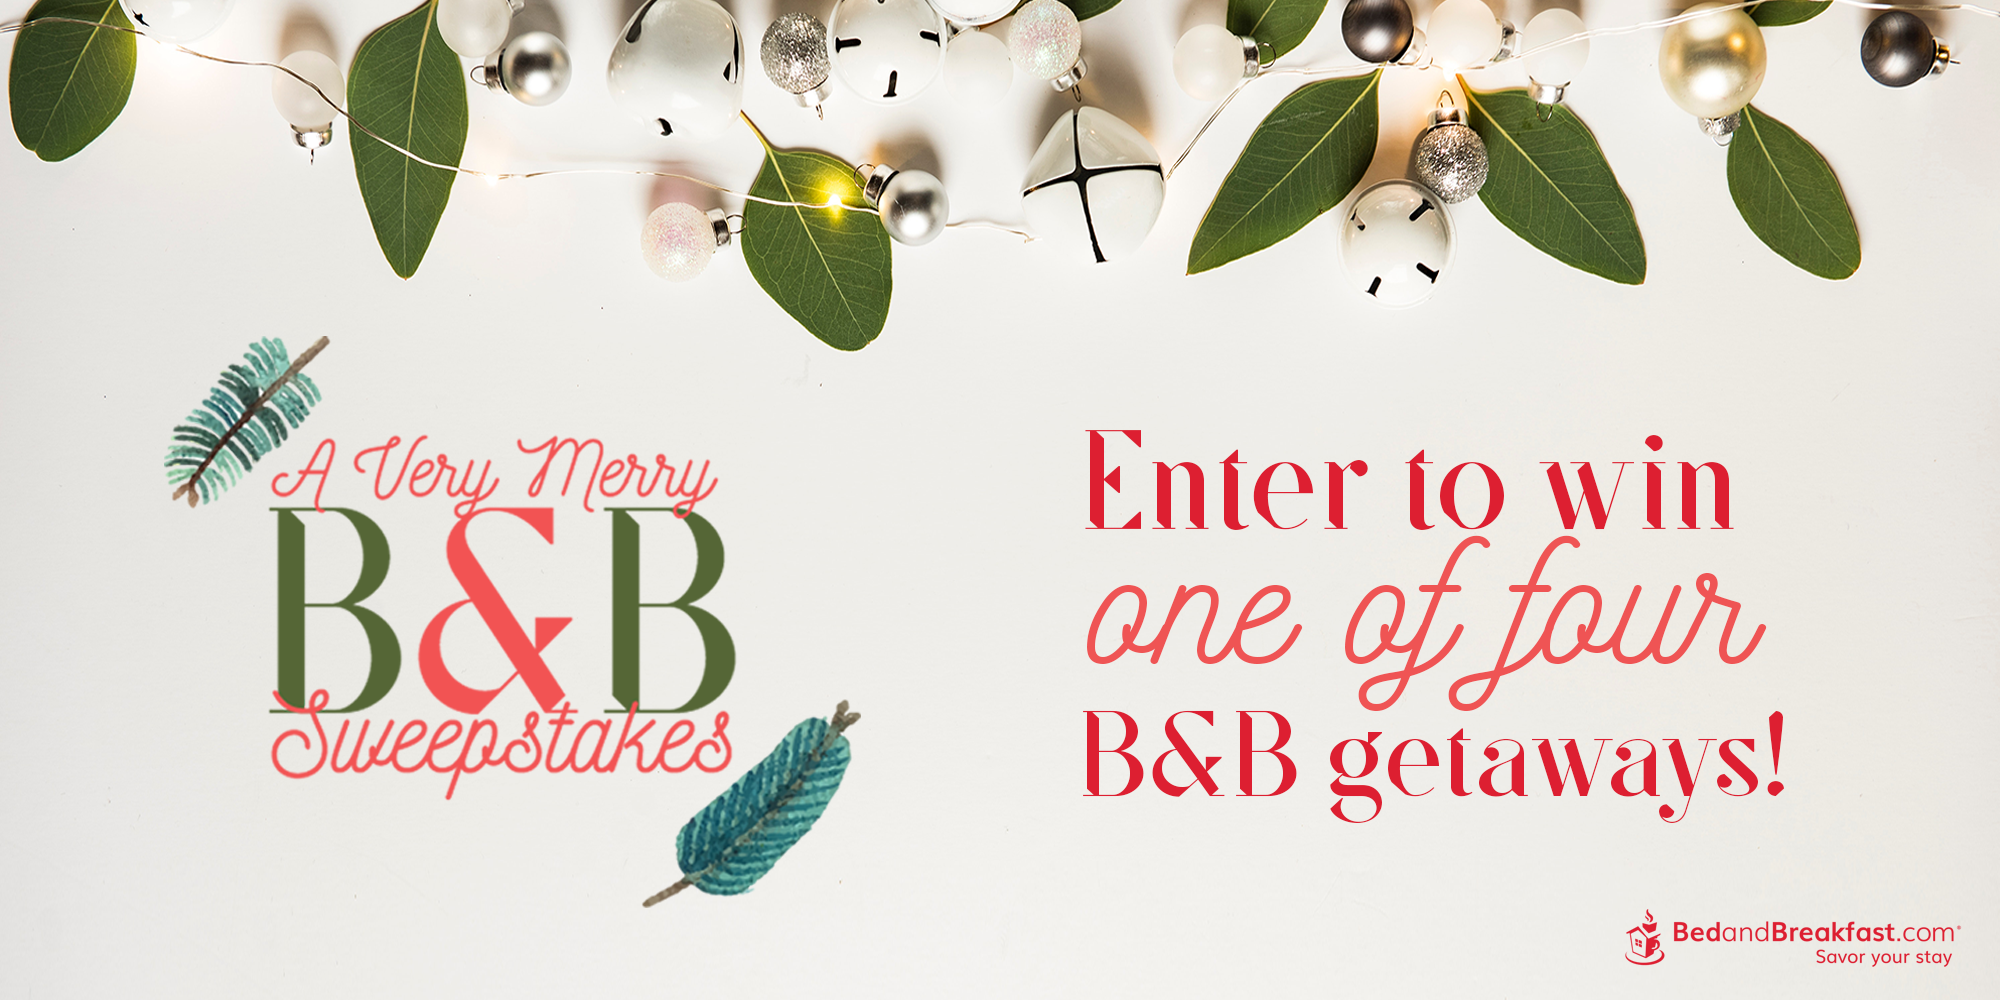 BedandBreakfast Announces A Very Merry BB Sweepstakes